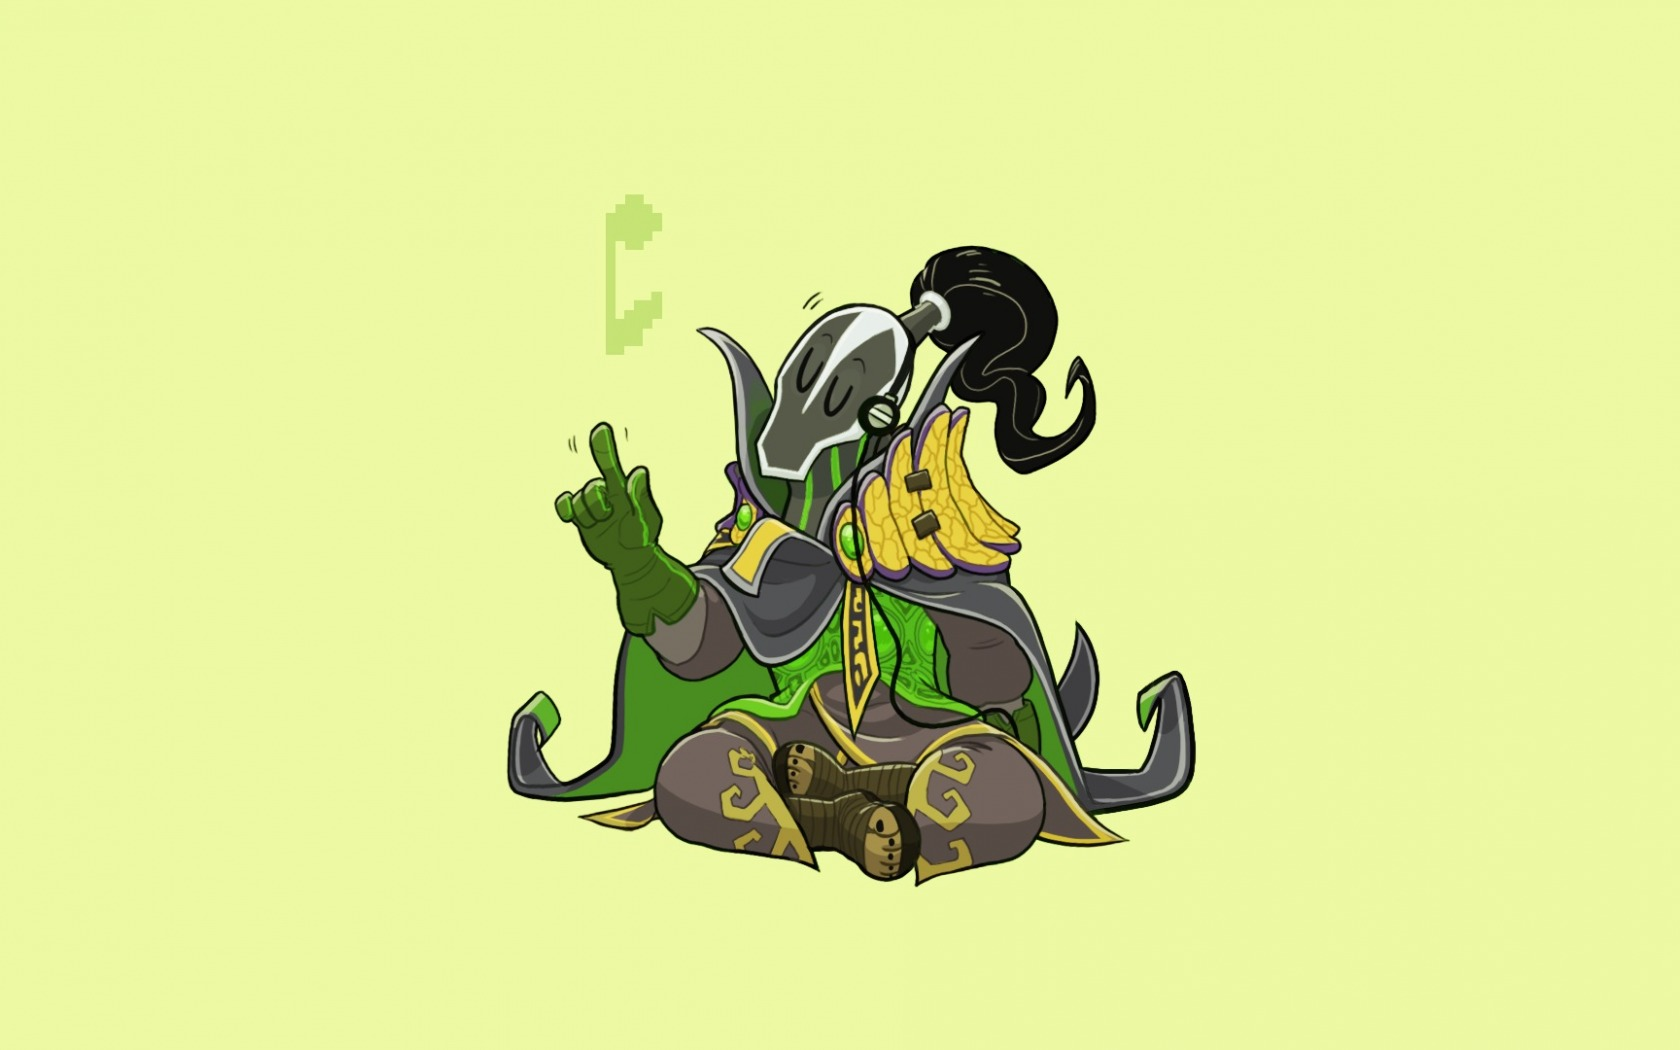 Rubick ART download hd wallpapers